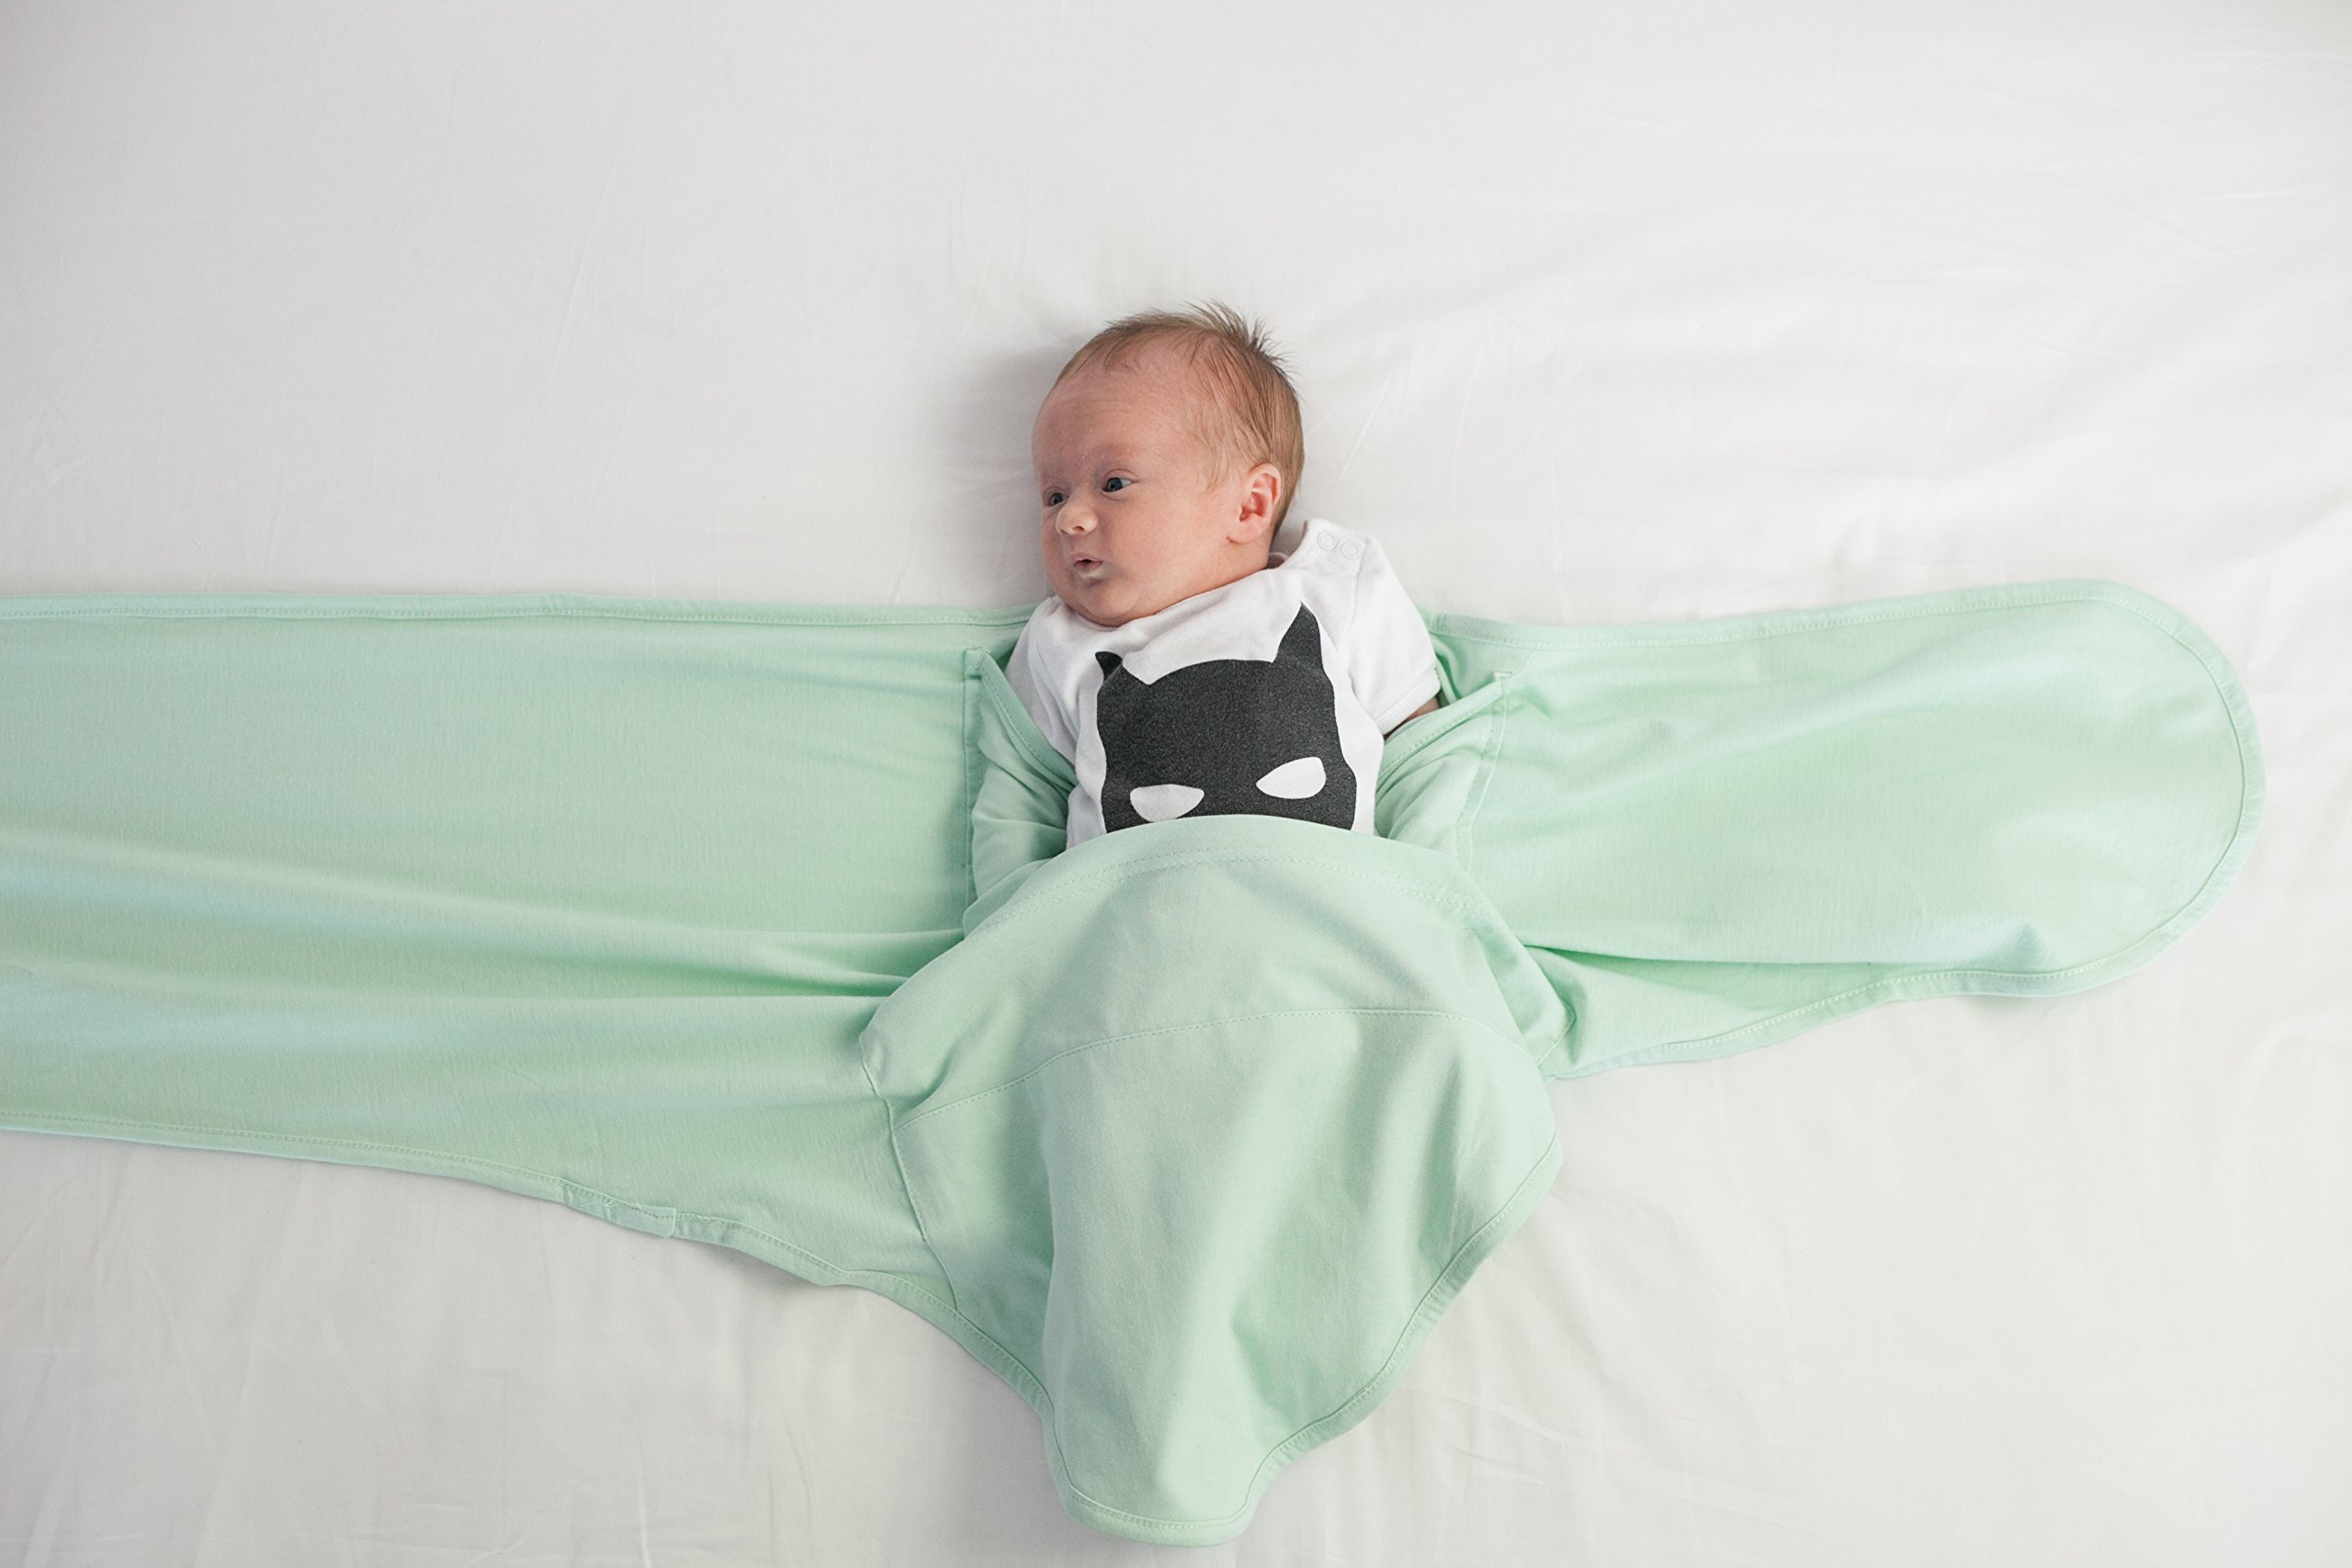 Miracle Blanket Swaddle Unisex Baby, Solid Mint, Newborn to 14 weeks by Miracle Blanket (Image #5)